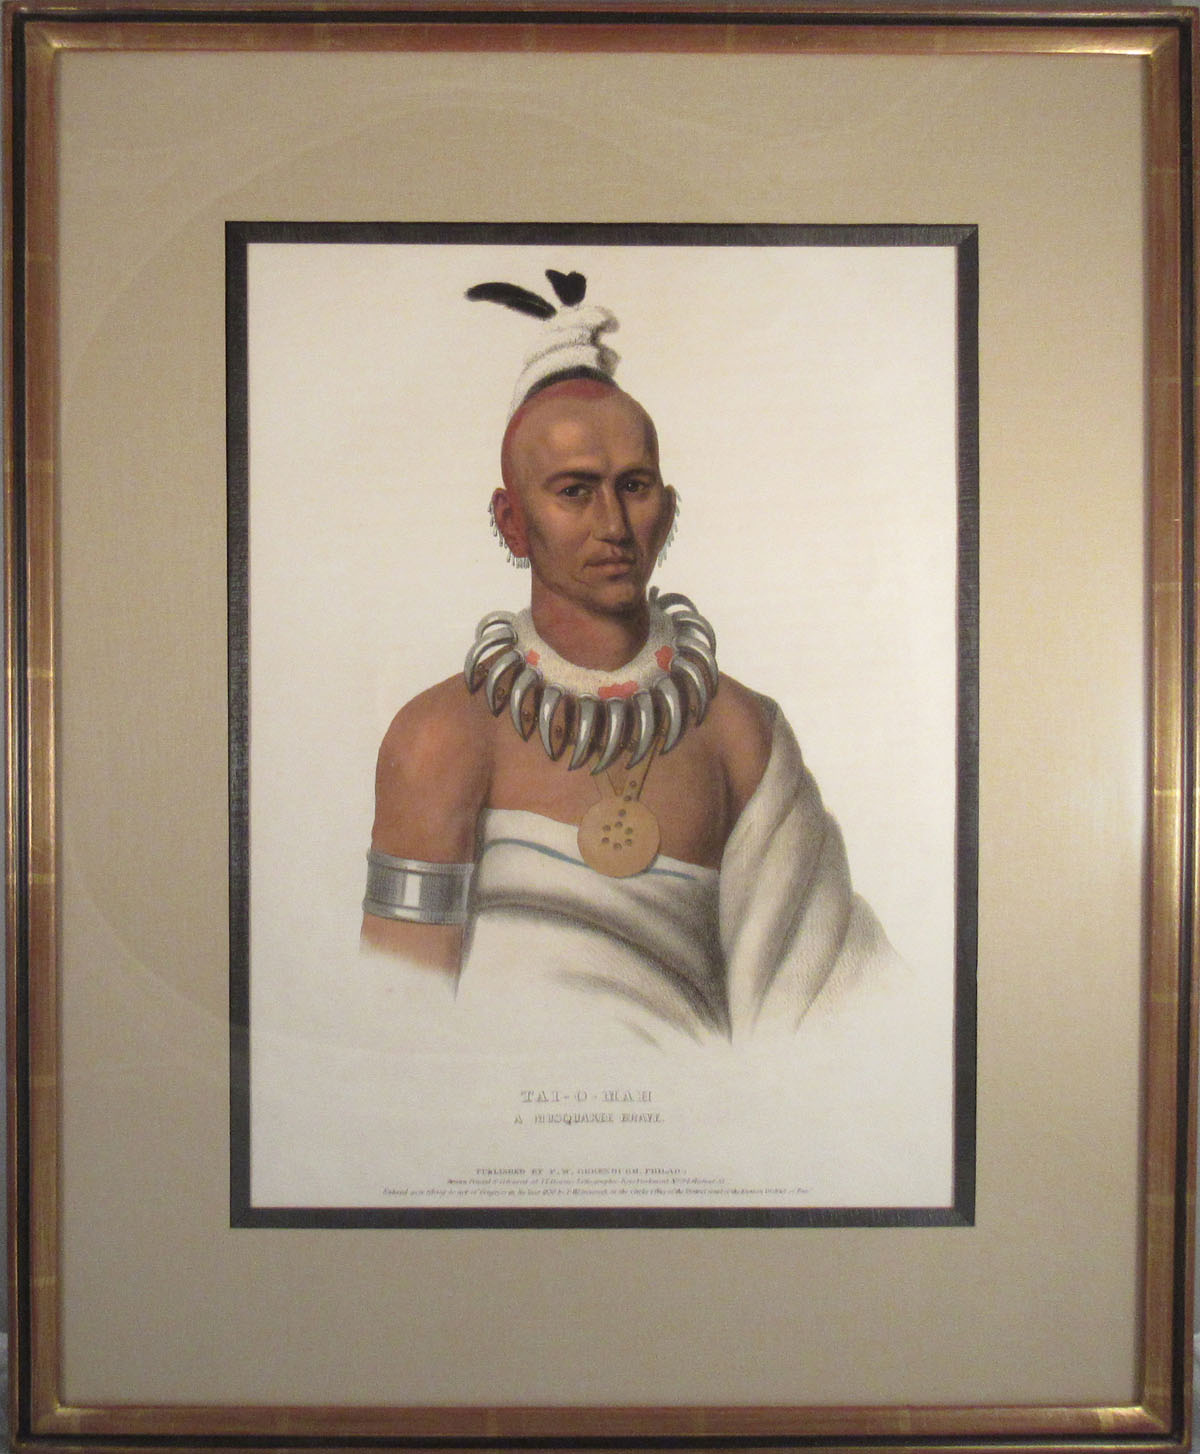 [Plate] TAI-O-MAH, A Musquakee Brave [From HISTORY OF THE INDIAN TRIBES OF NORTH AMERICA]. Native American, Thomas L. McKenney, James Hall.